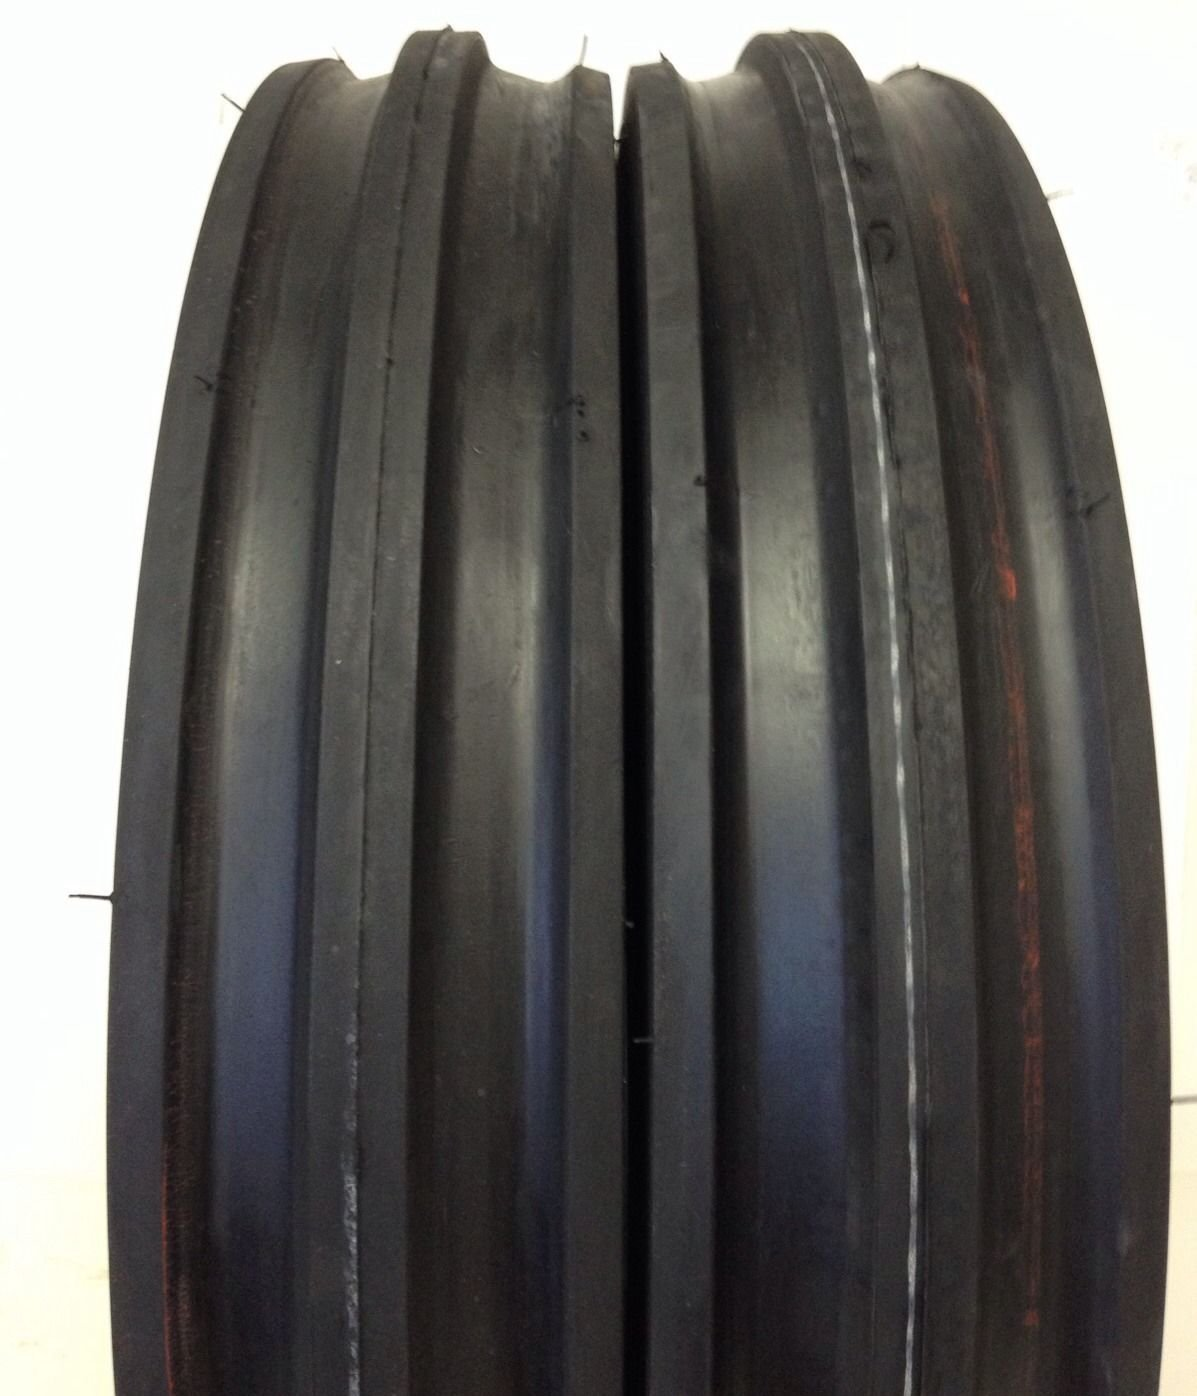 Two 4.00-12 Rib Tractor Tires with Tubes 400-12 Three Rib by Deestone (Image #1)